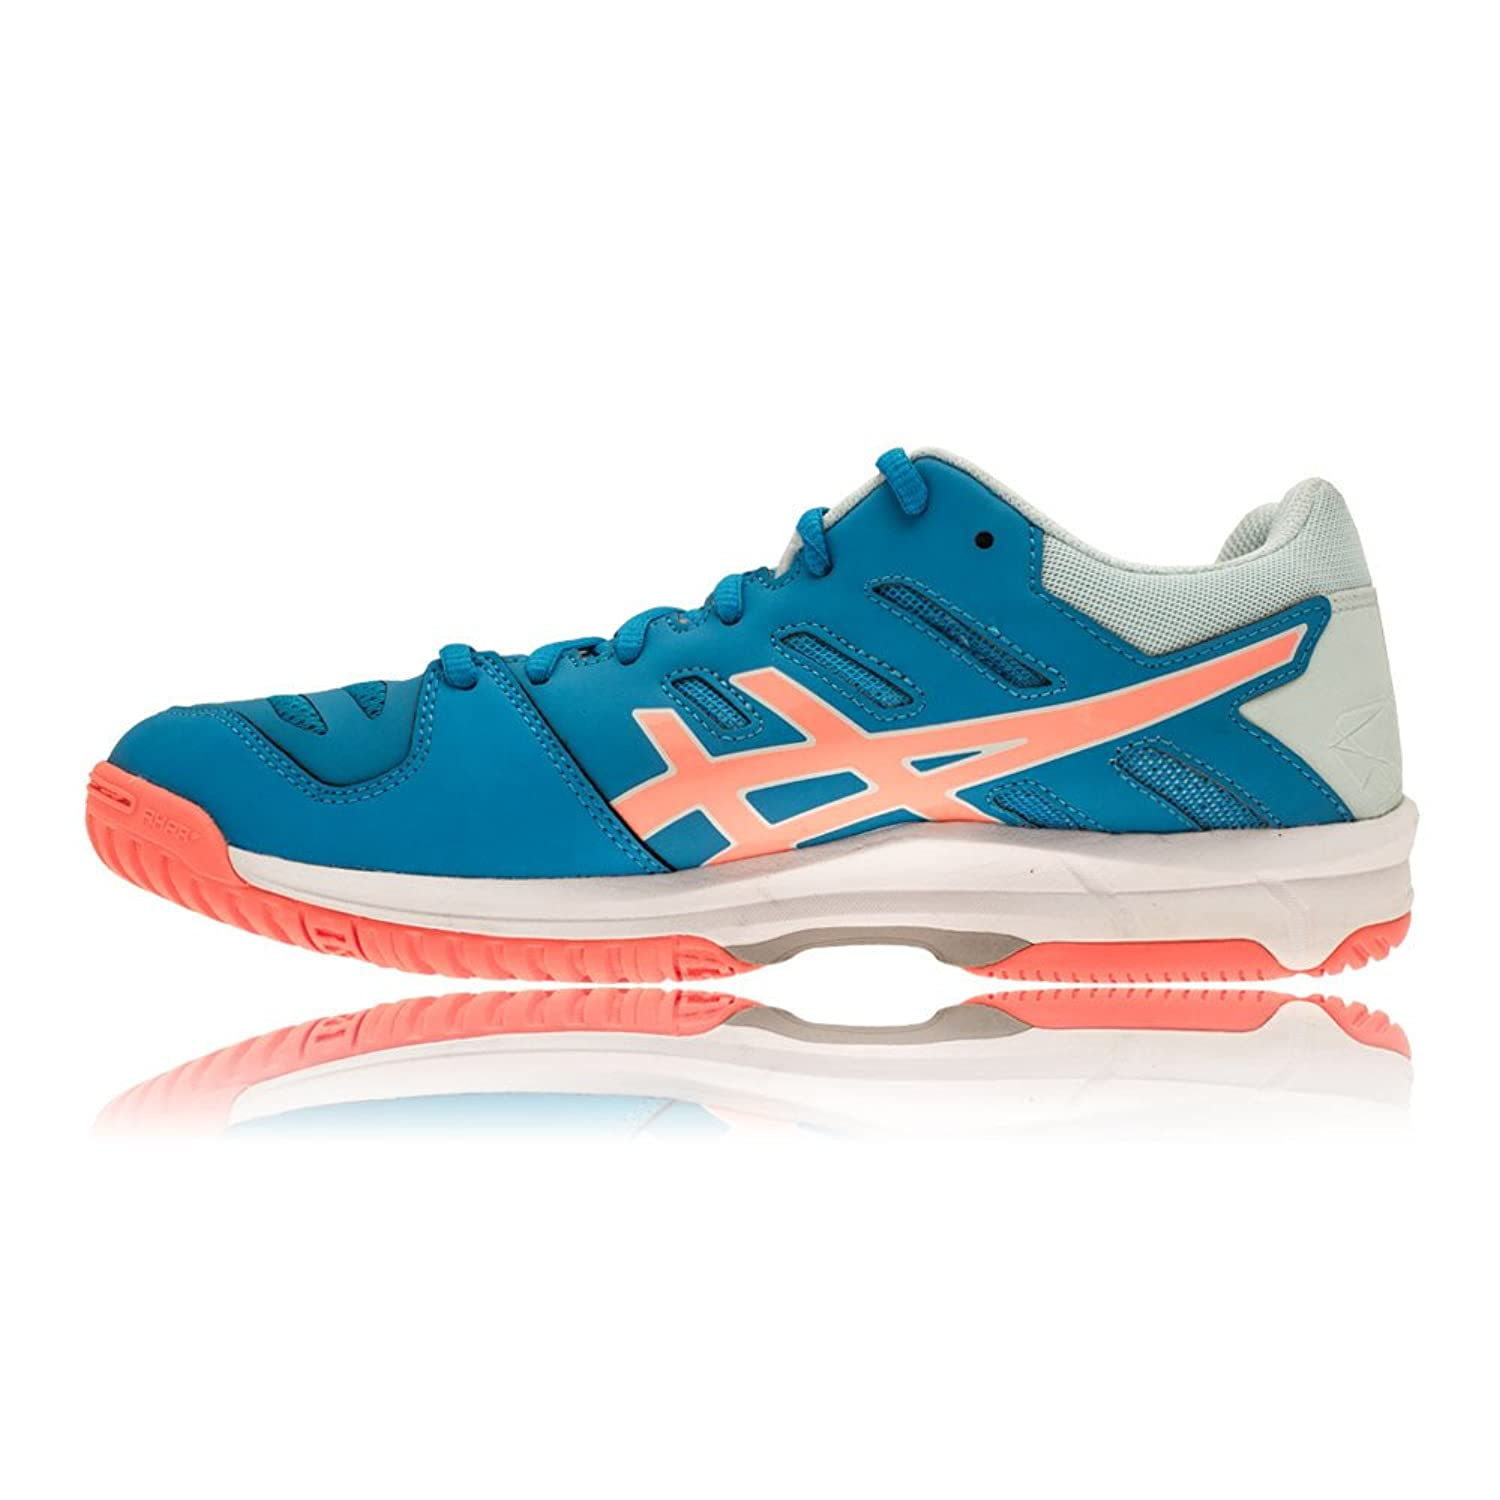 Asics Gel-Beyond 5 Women's Indoor Court Shoes: Amazon.co.uk: Shoes & Bags